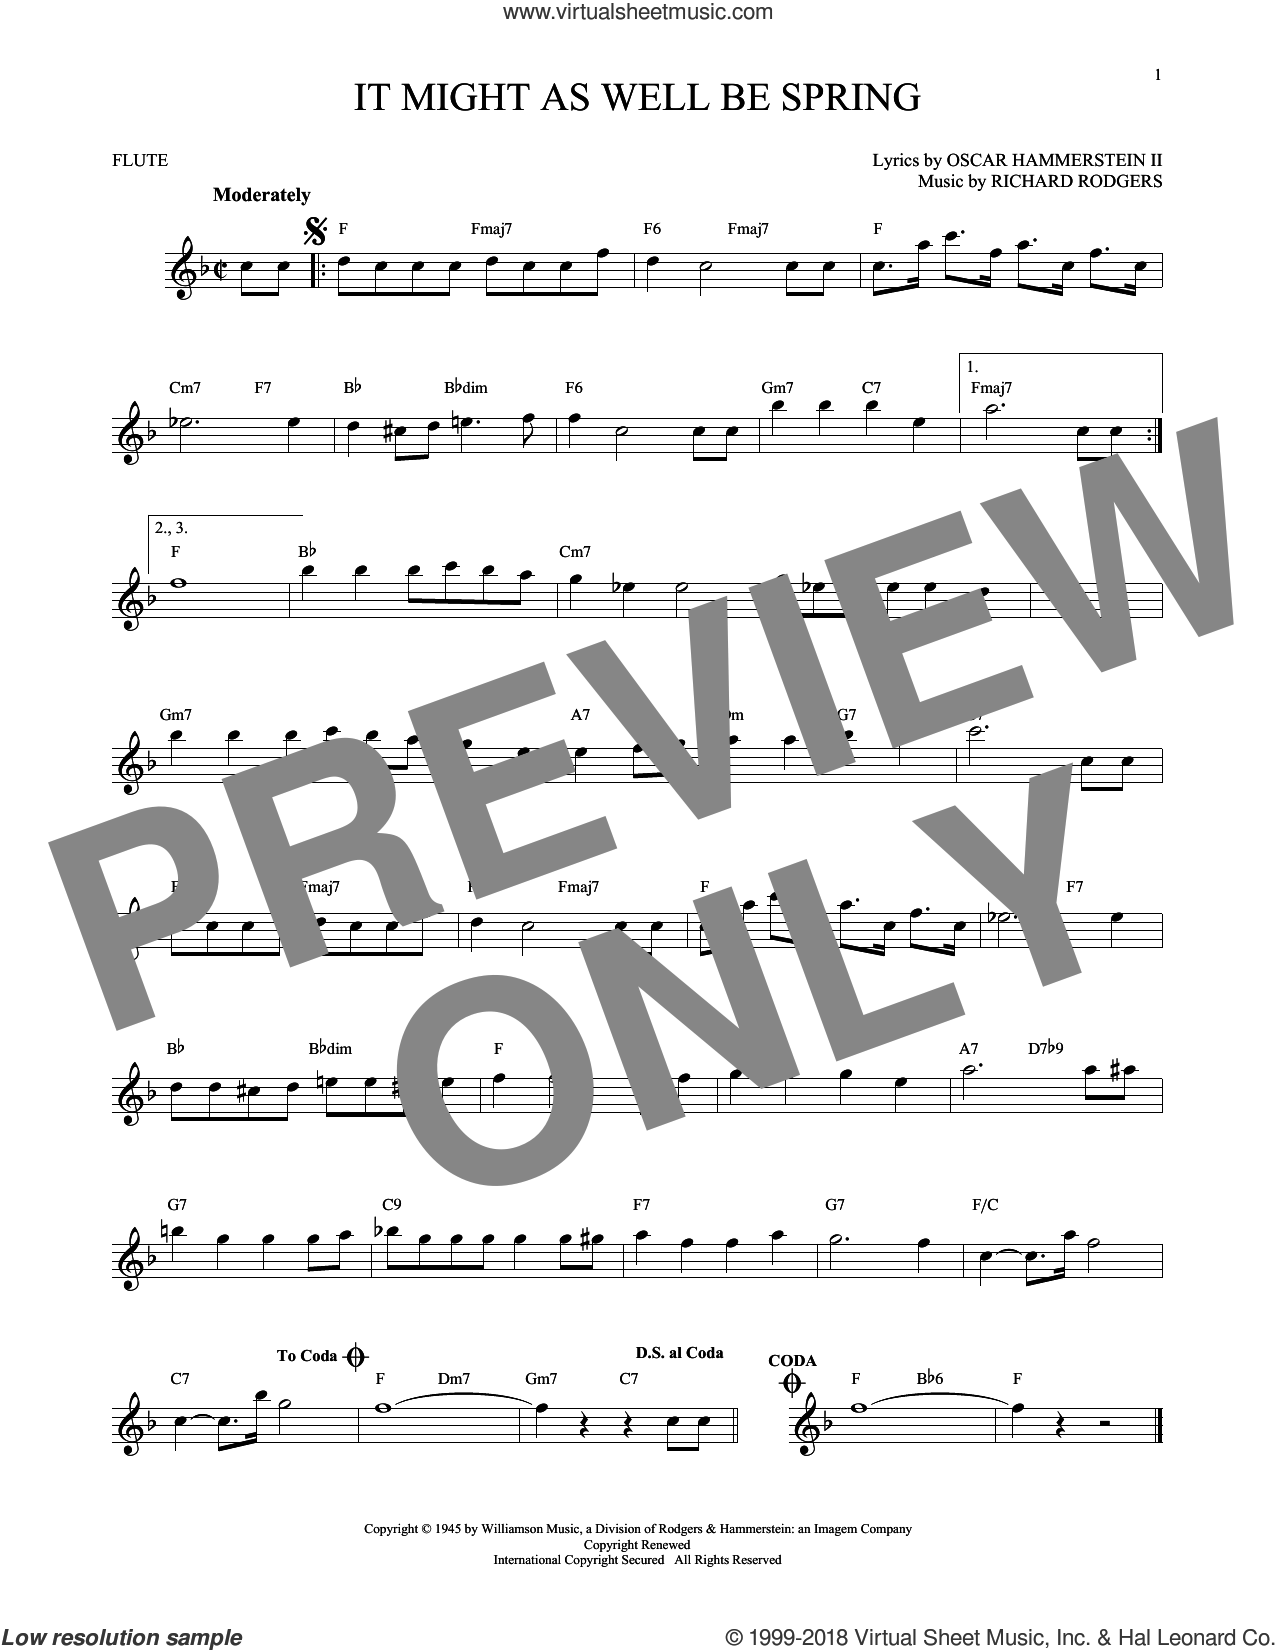 It Might As Well Be Spring sheet music for flute solo by Richard Rodgers, Rodgers & Hammerstein and Oscar II Hammerstein. Score Image Preview.